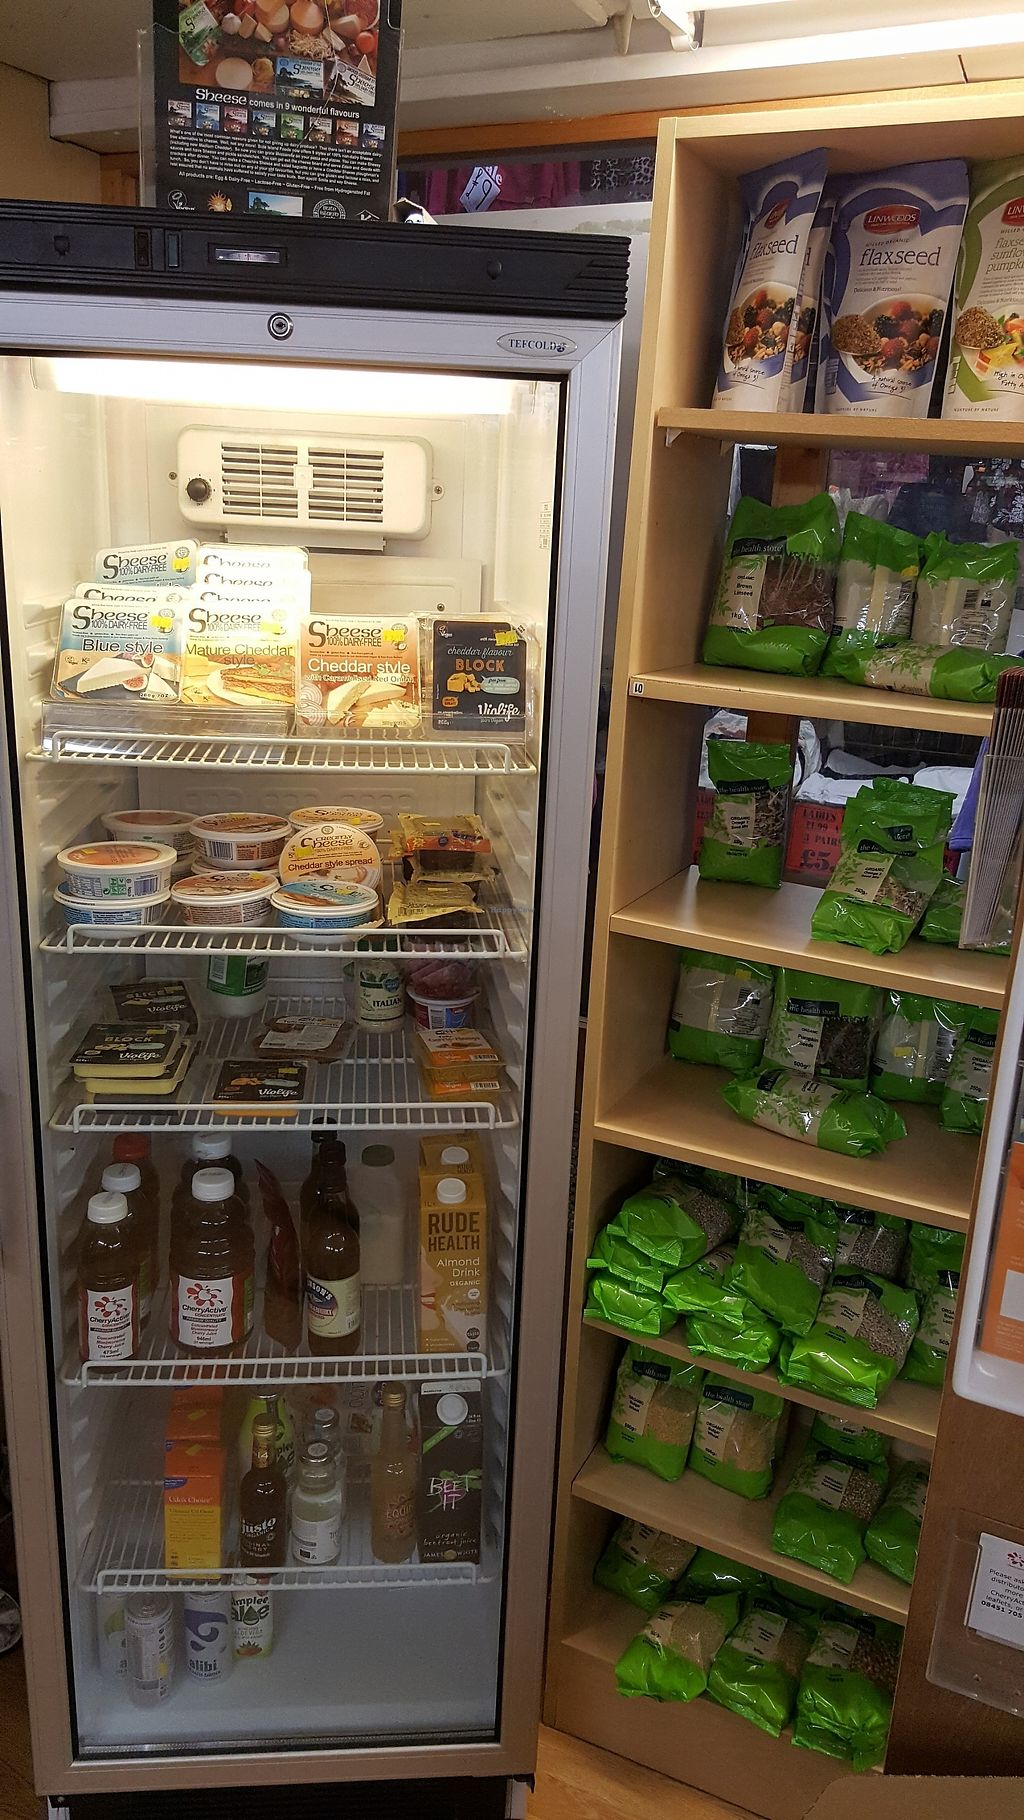 "Photo of Bury Health Foods  by <a href=""/members/profile/Clare"">Clare</a> <br/>Chilled goods <br/> October 23, 2017  - <a href='/contact/abuse/image/103529/318134'>Report</a>"